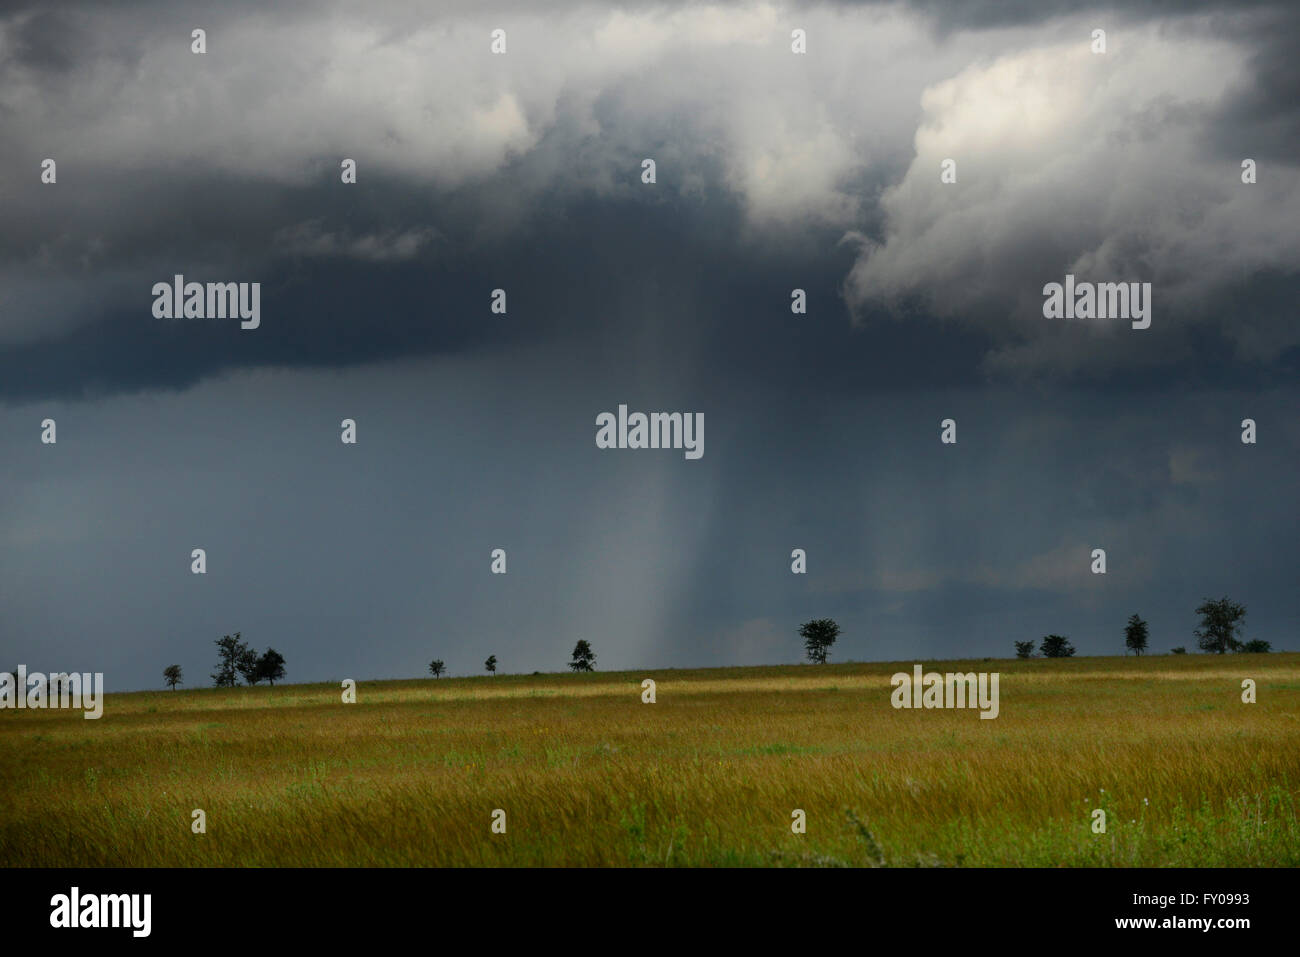 A storm brewing over the savanna in Serengeti national park. - Stock Image